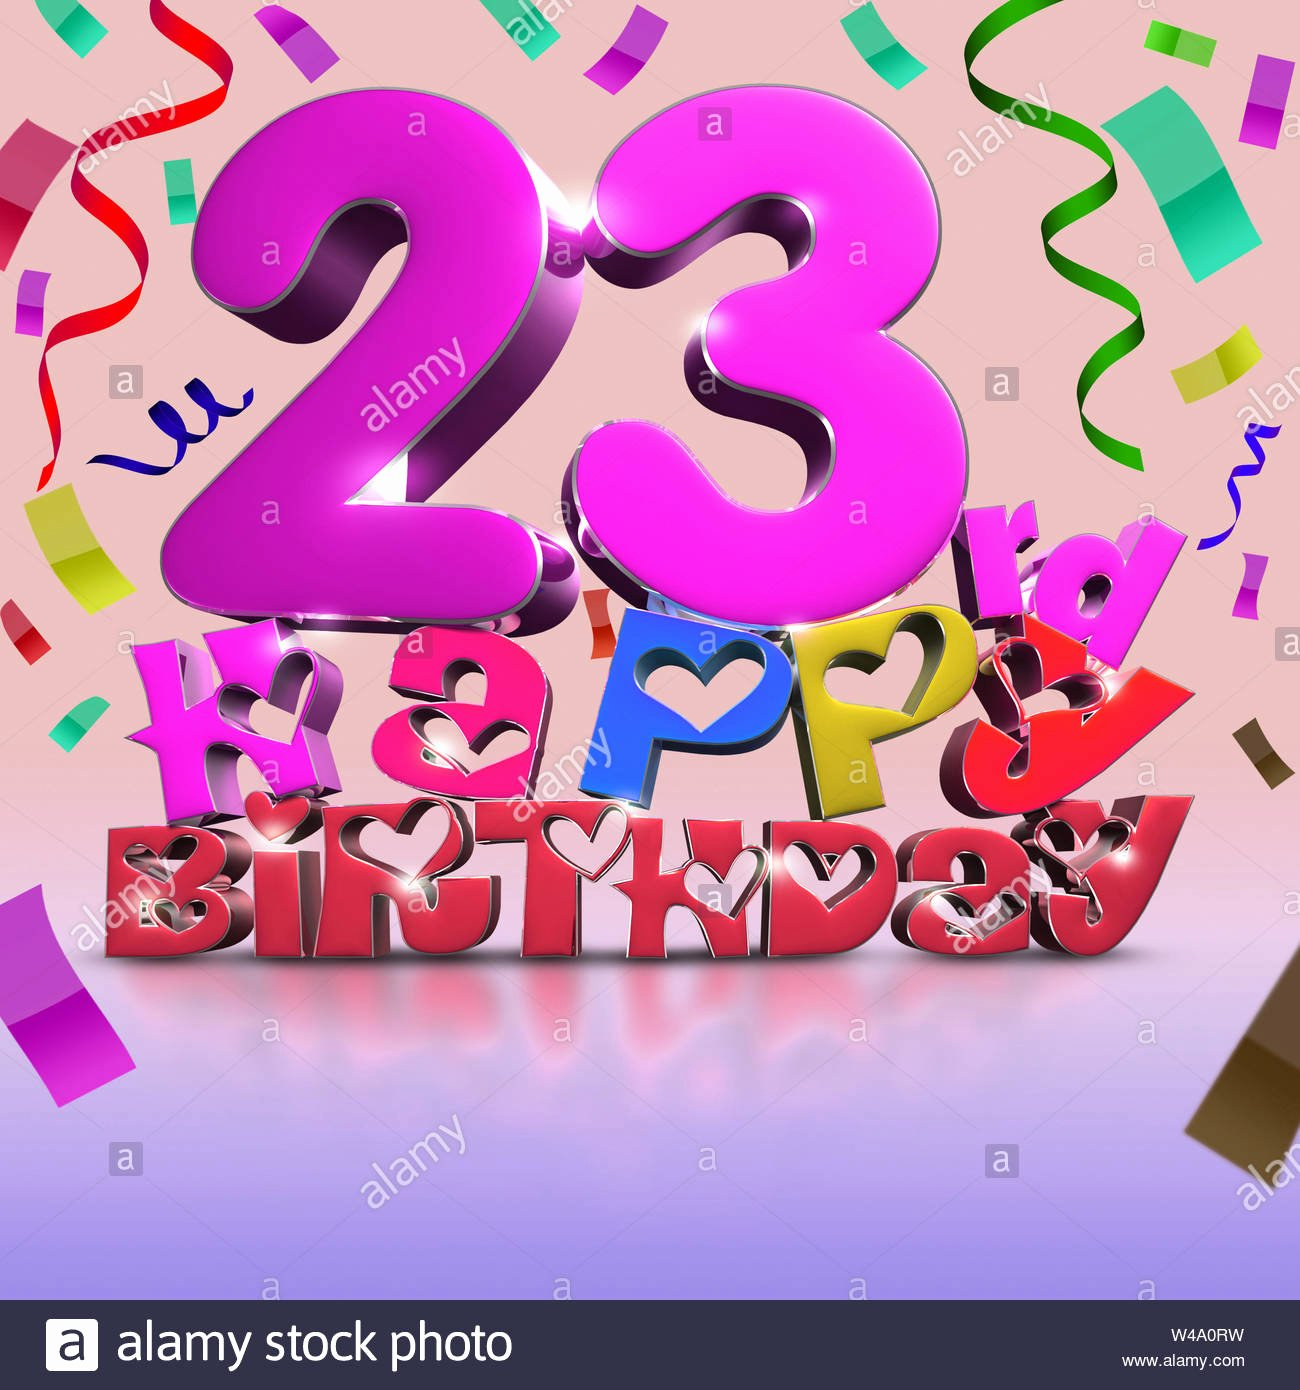 Happy Birthday 3d Images Awesome 23 Rd Happy Birthday 3d Rendering Ribbon as Background